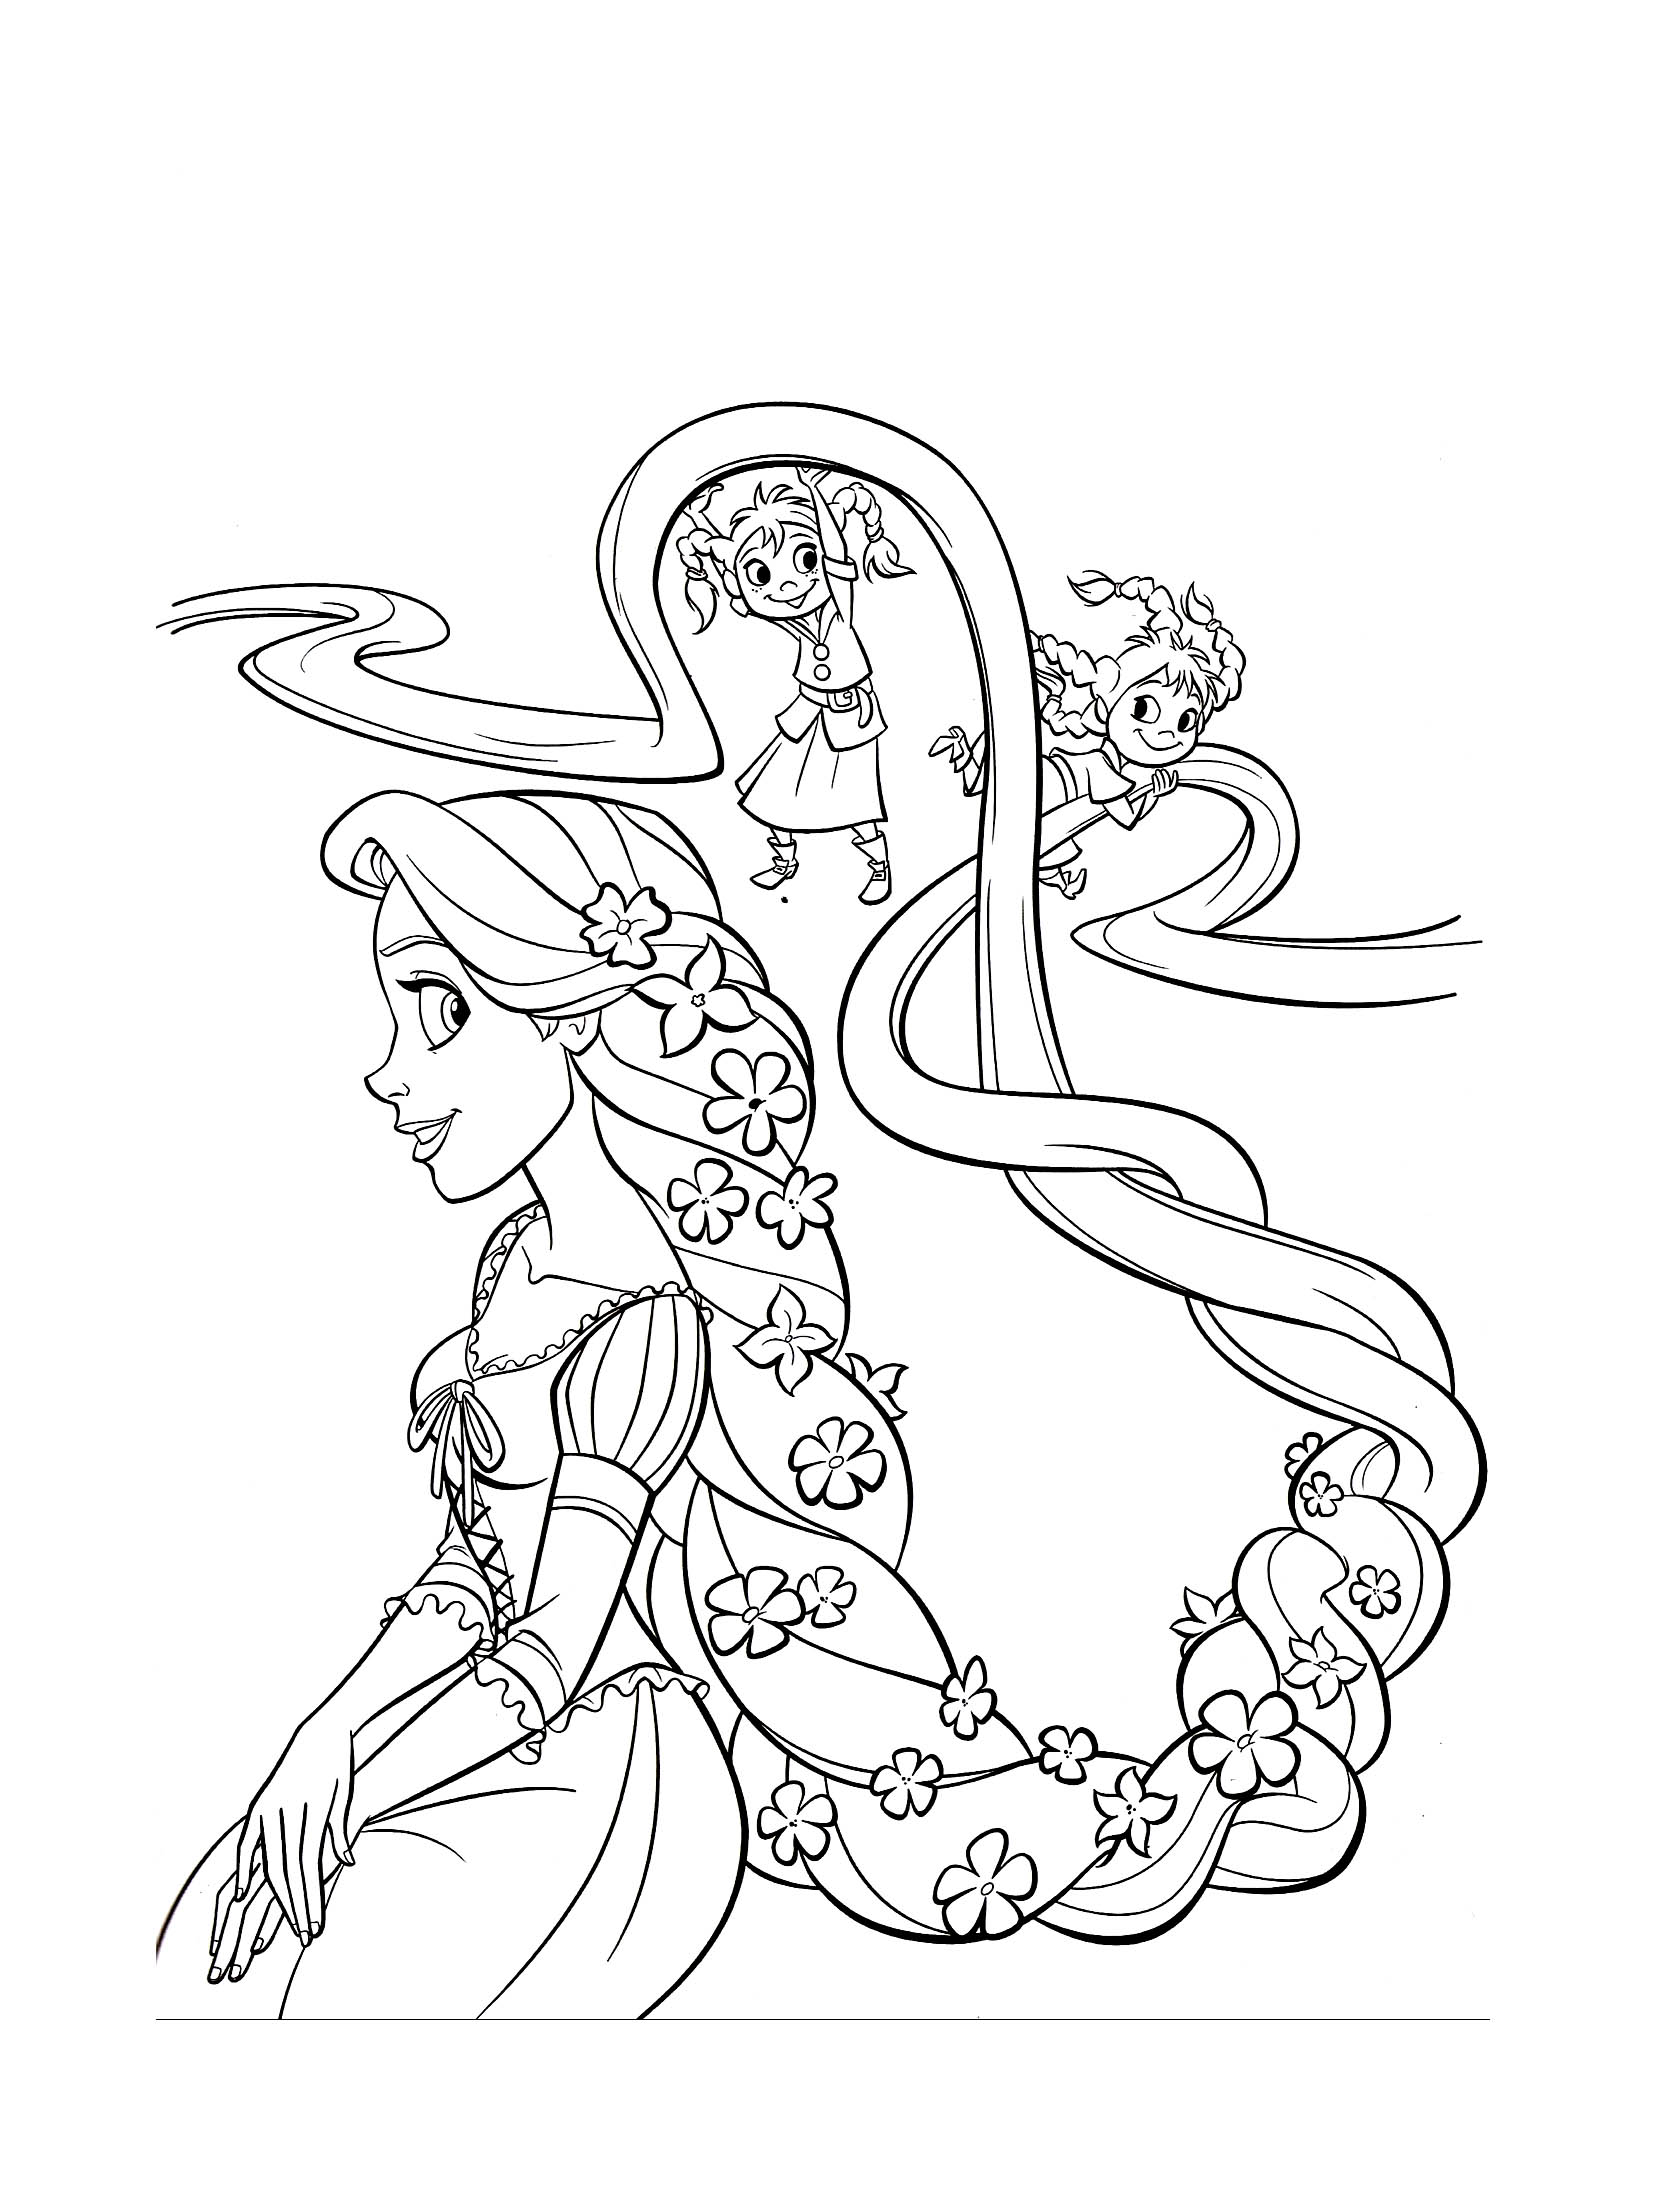 Free Tangled coloring page to download : Rapunzel (Tangled)